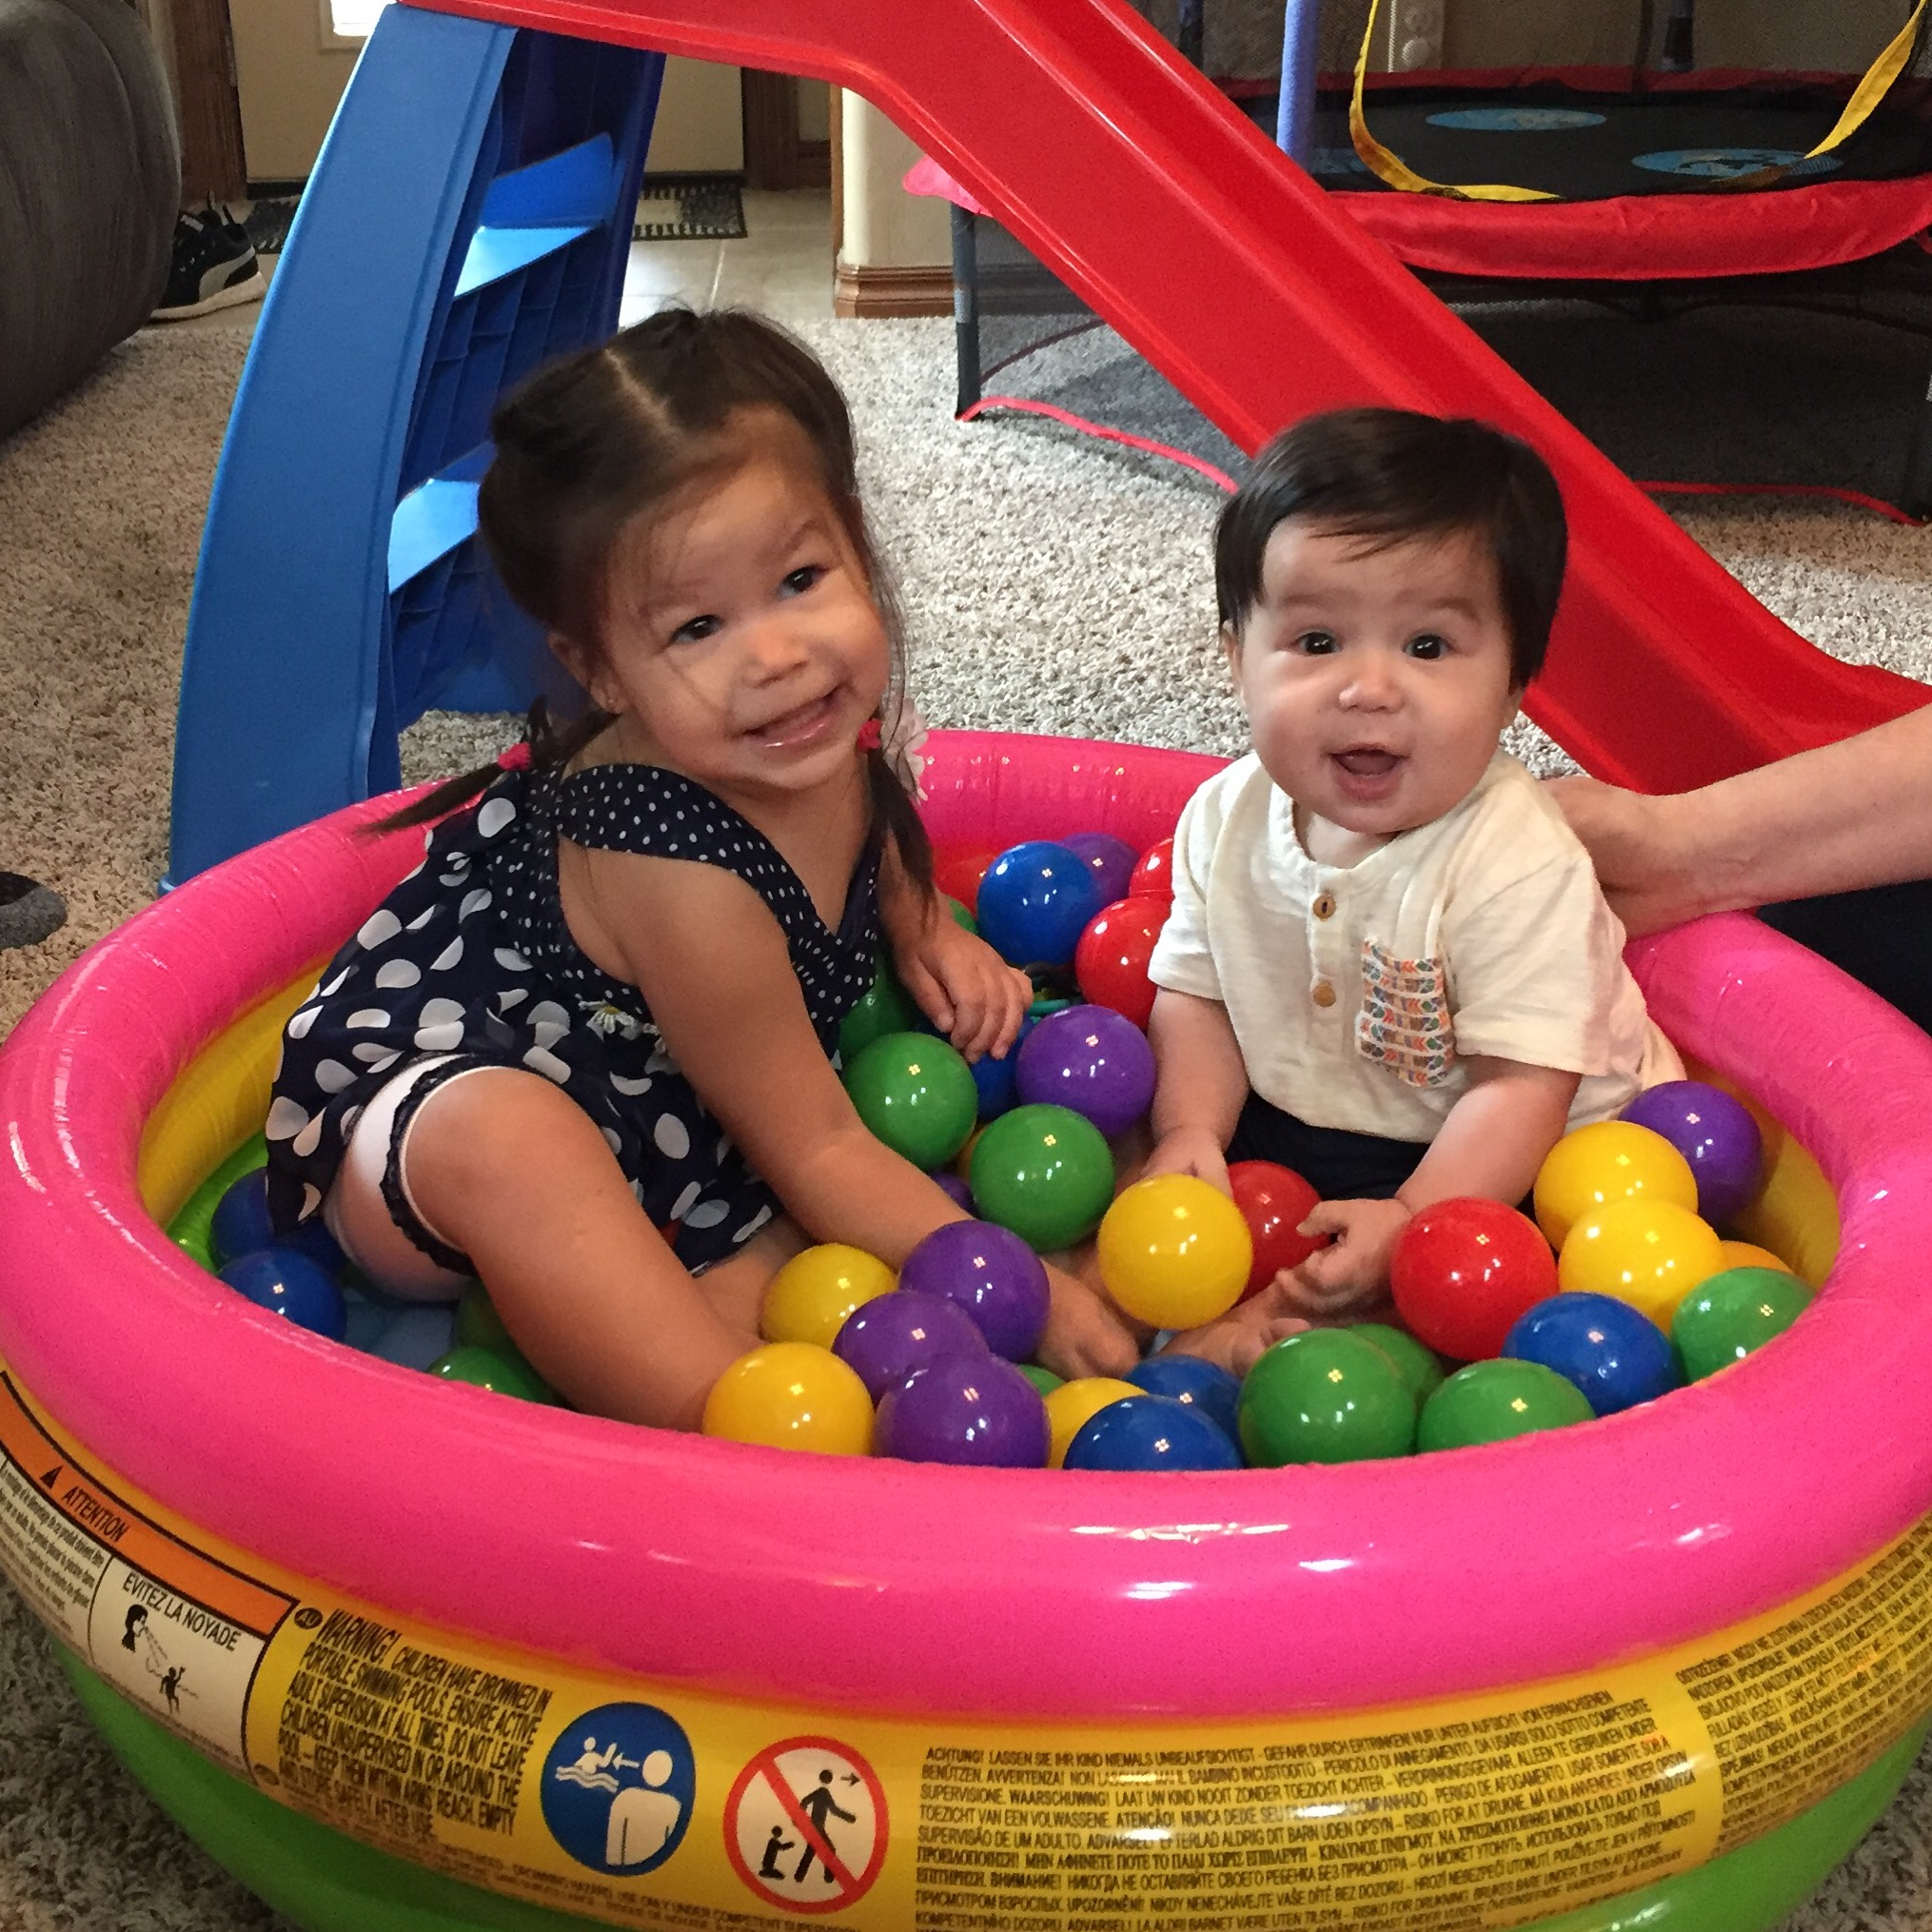 playing in the ball pit!